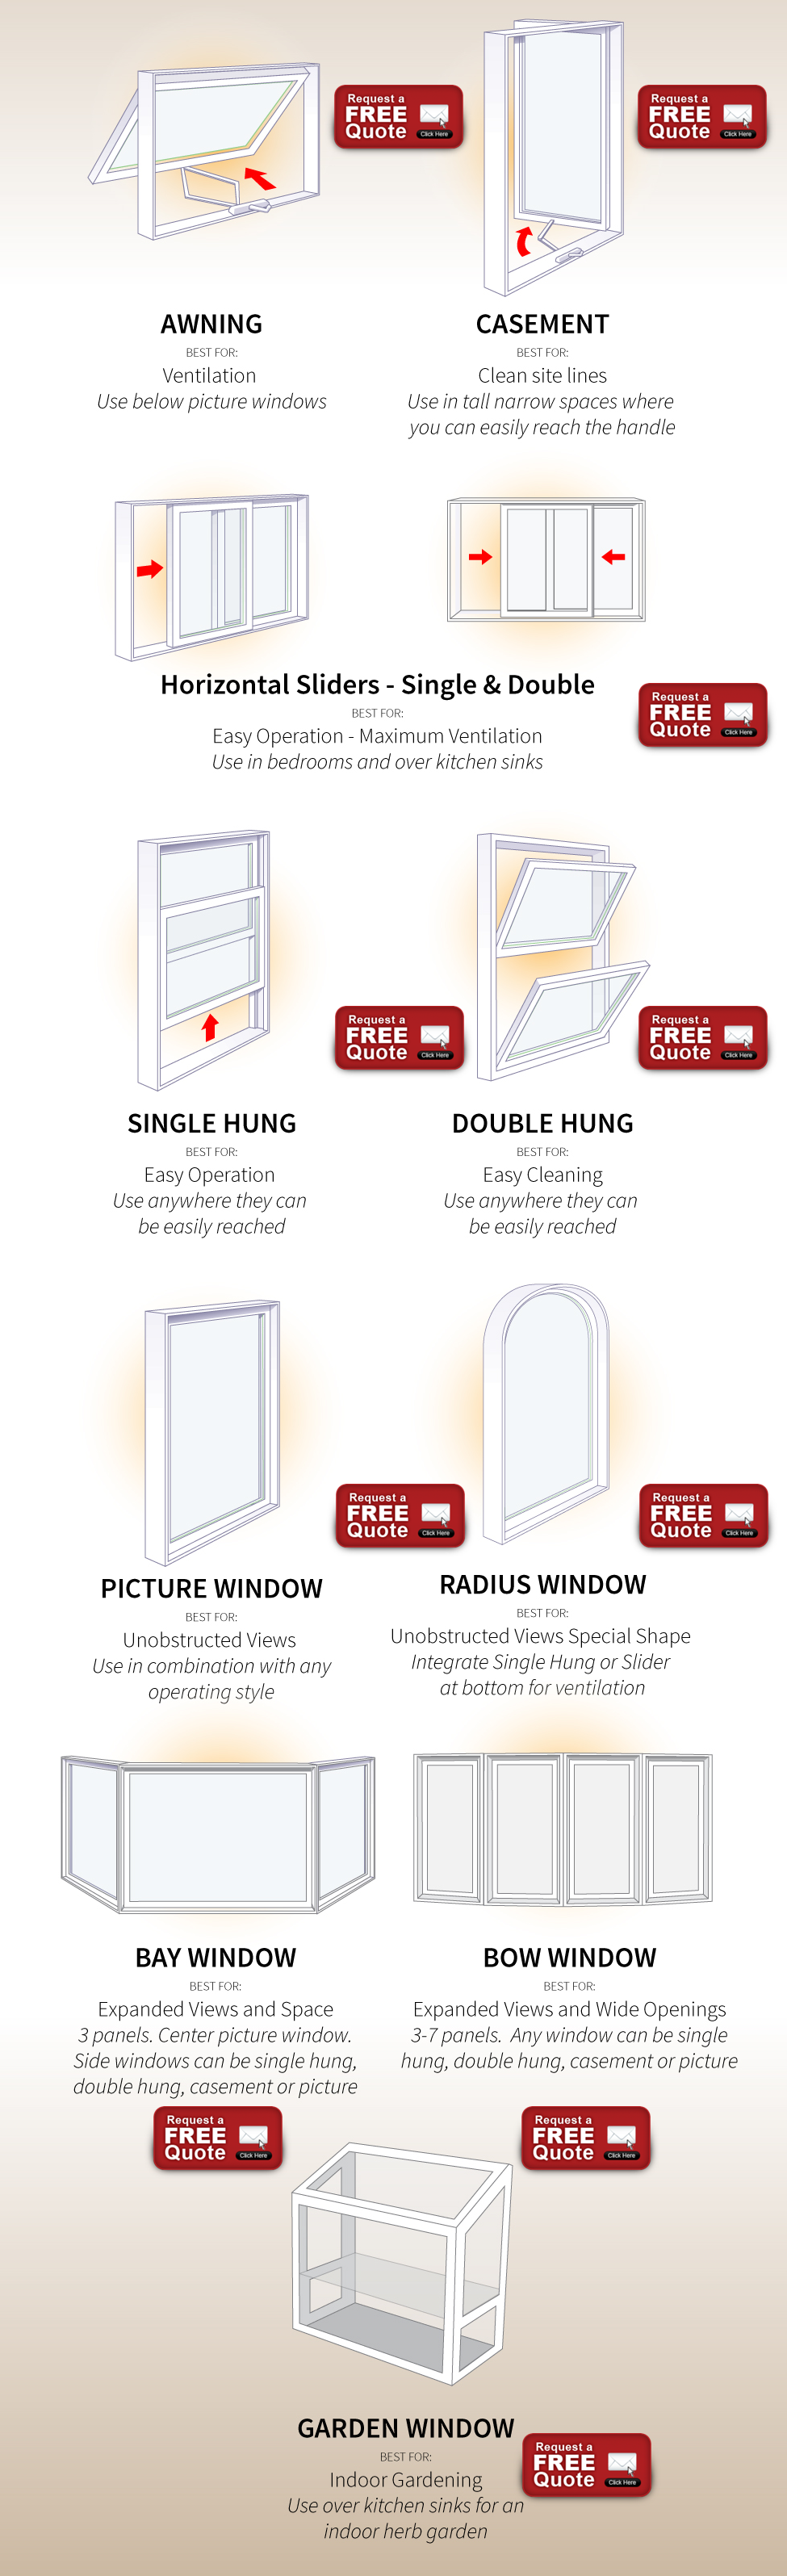 Unique Builders of Texas - Replacement Windows and Doors - Free Quote 4